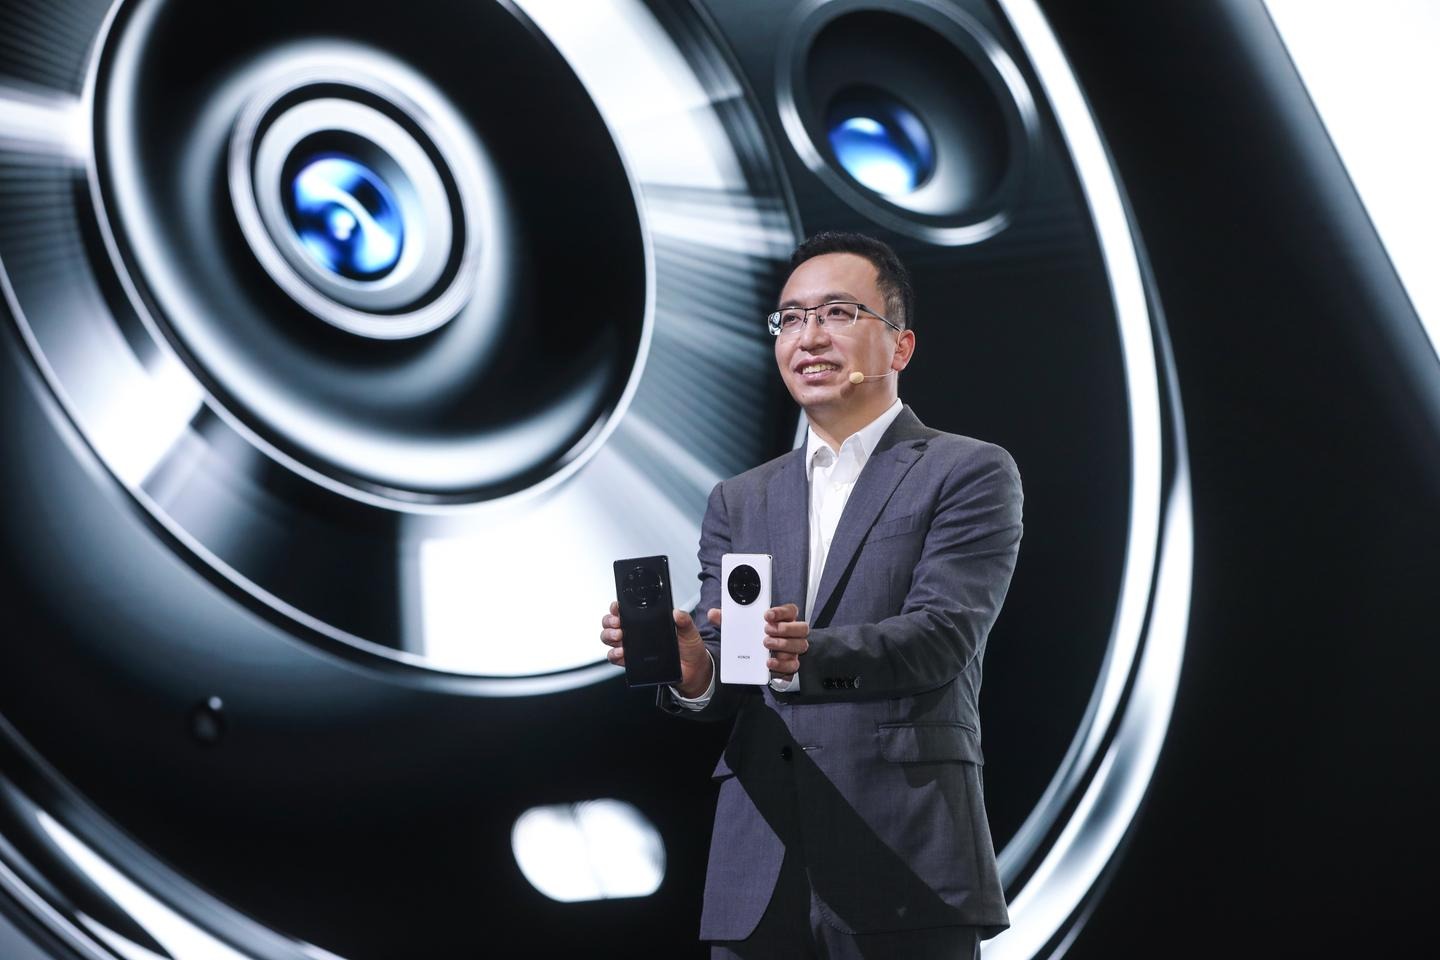 Honor's first flagship phones since breaking away from Huawei have been announced